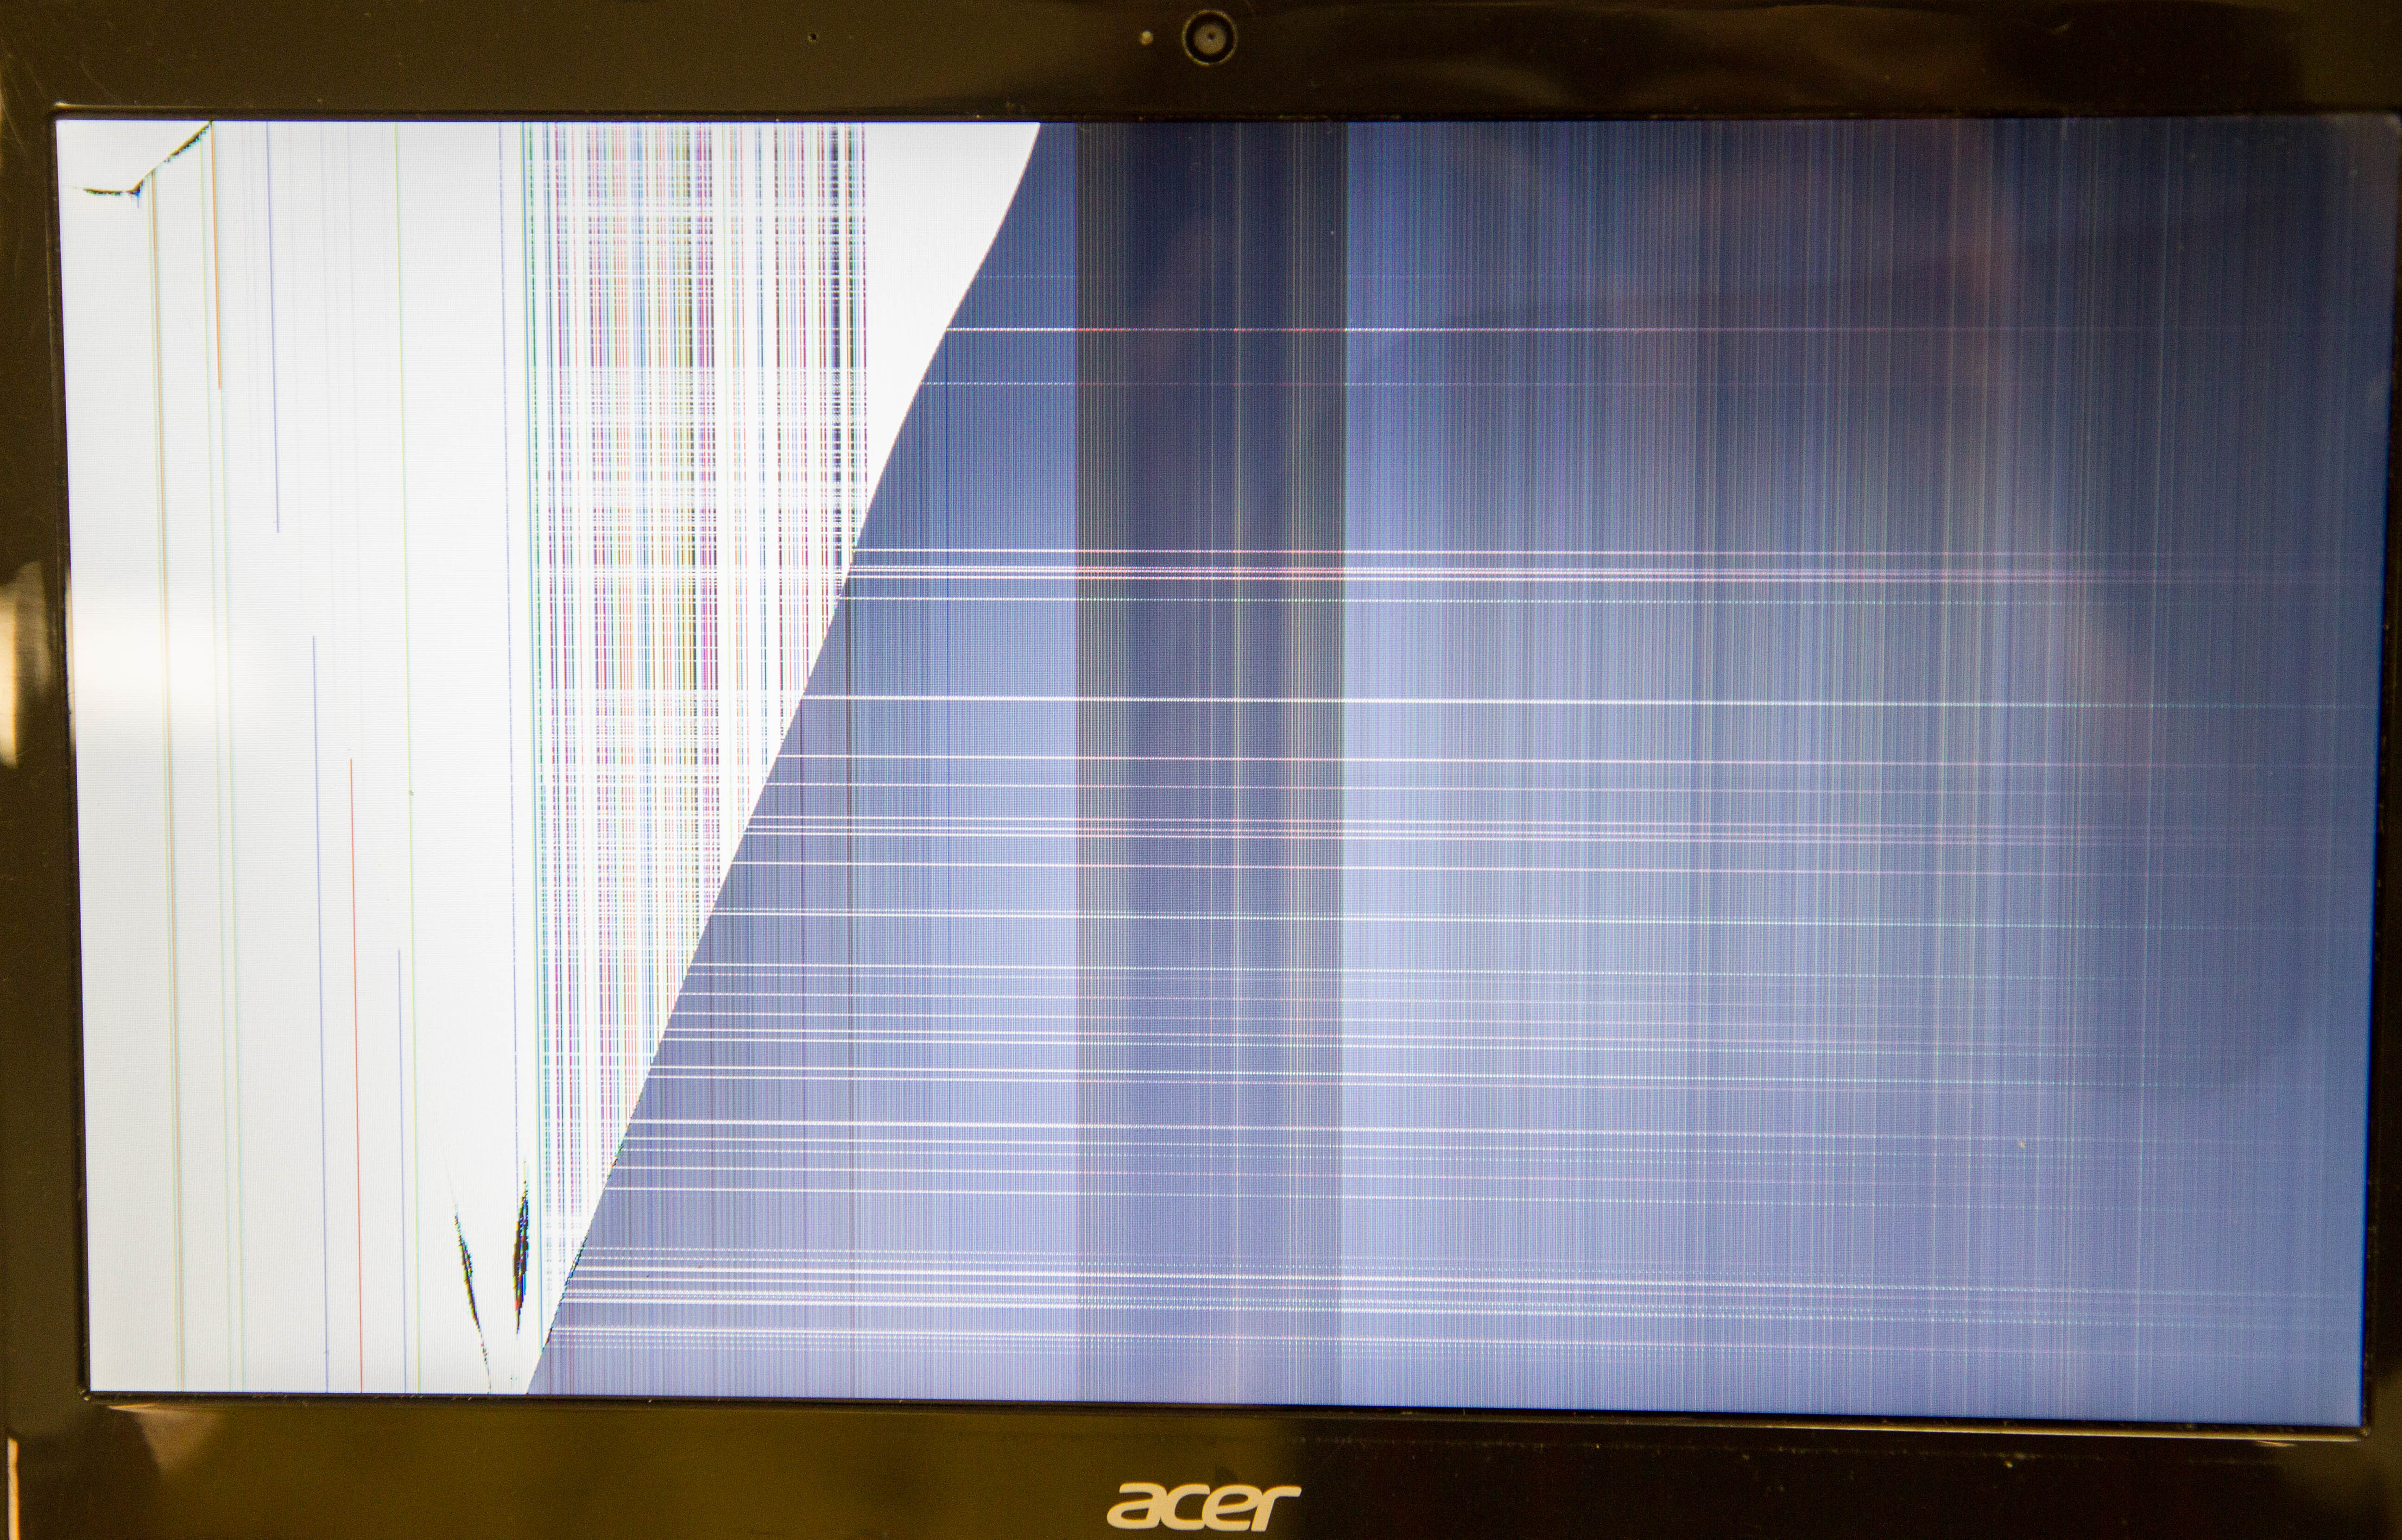 Example of a cracked LCD screen